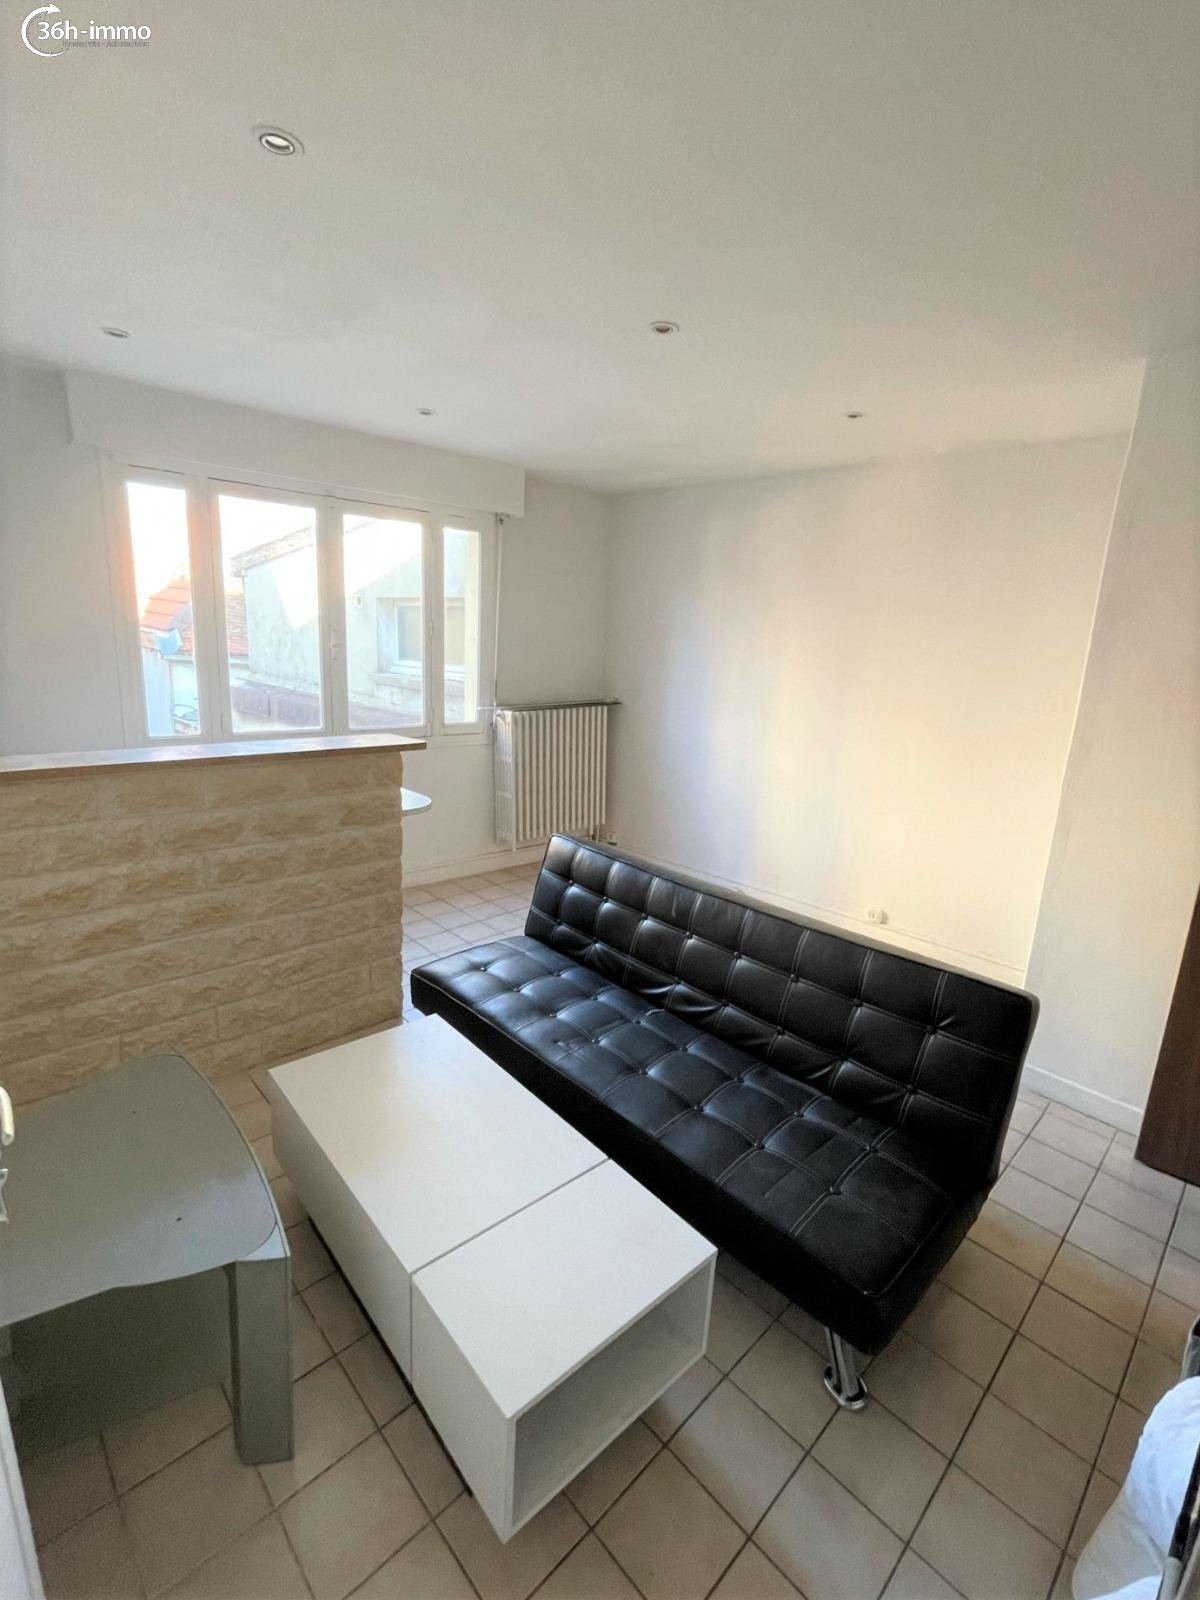 Appartement Troyes 10000 Aube 22 m<sup>2</sup> 1 pi&eagrave;ce 36000 euros